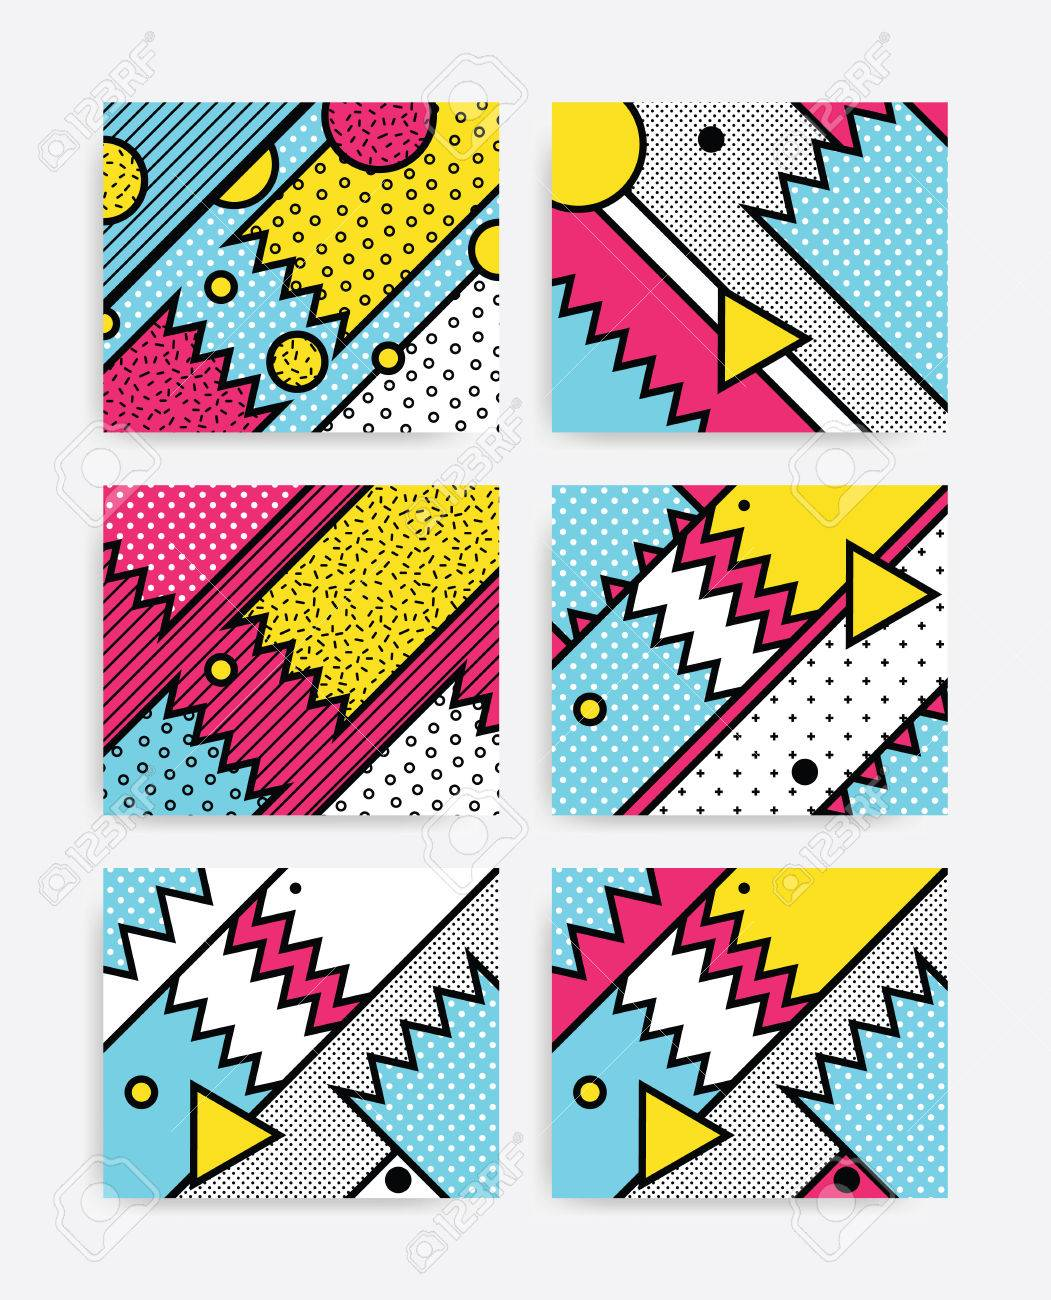 Colorful Pop art geometric pattern set with bright bold blocks. Colorful Material Design Background in Pink Yellow Blue Black and White. Prospectus, poster, magazine, broadsheet, leaflet, book Foto de archivo - 67643597